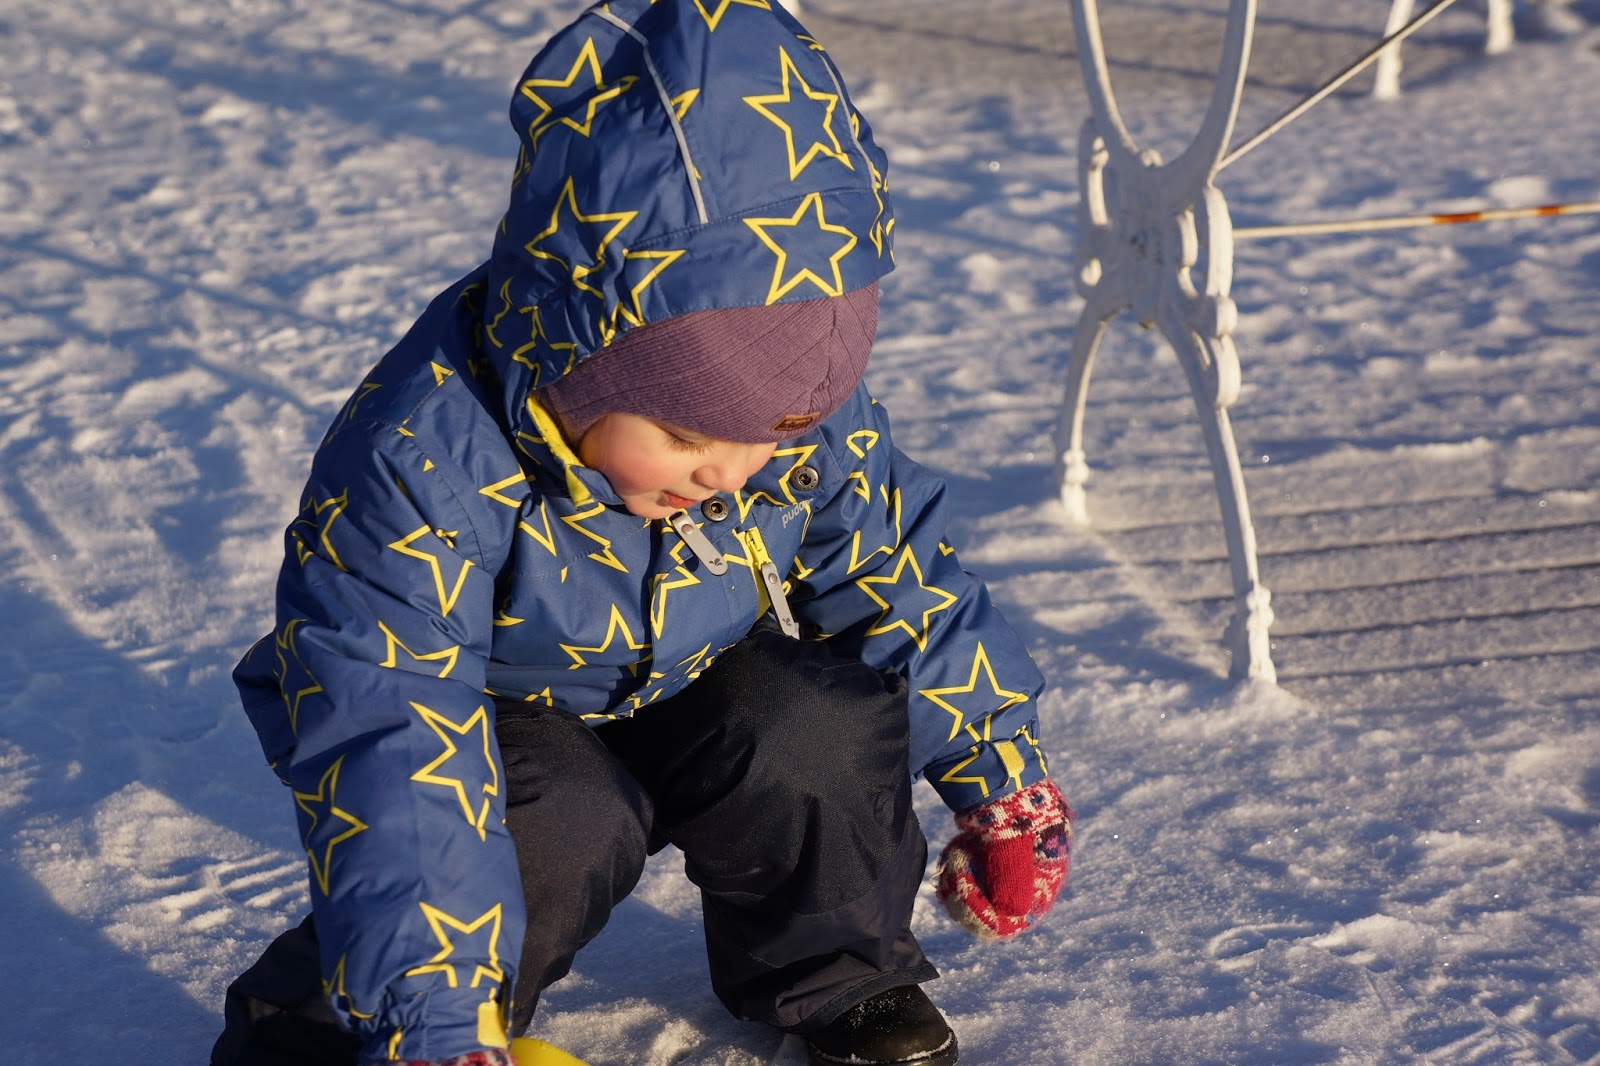 a child playing in snow wearing ski clothing